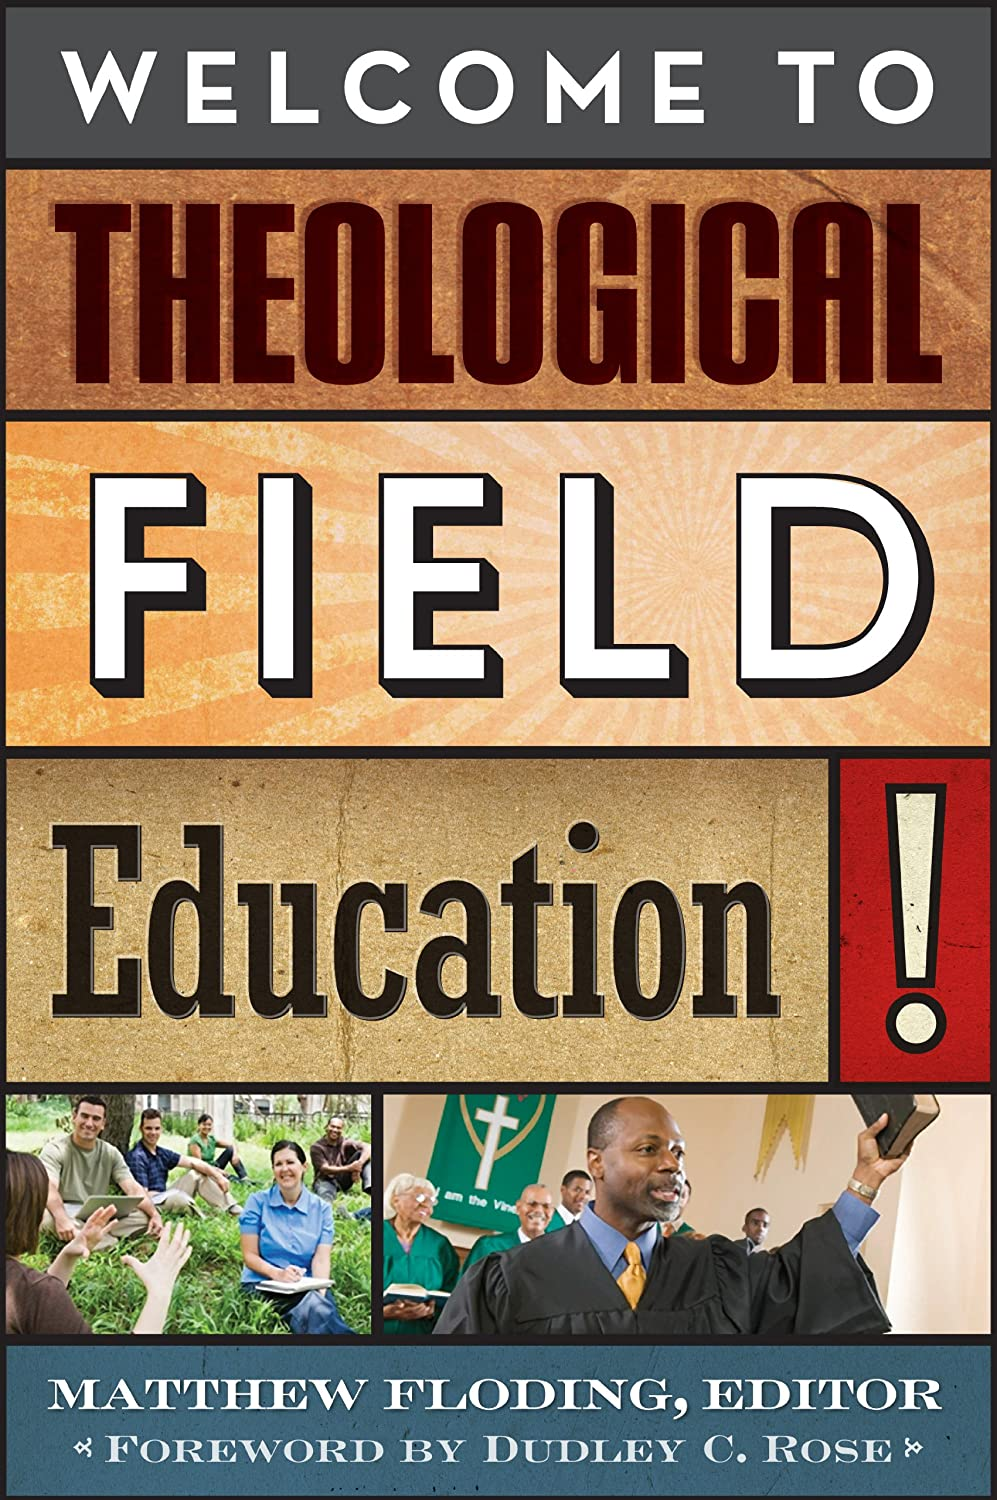 Welcome to Theological Field Education! Matthew Floding